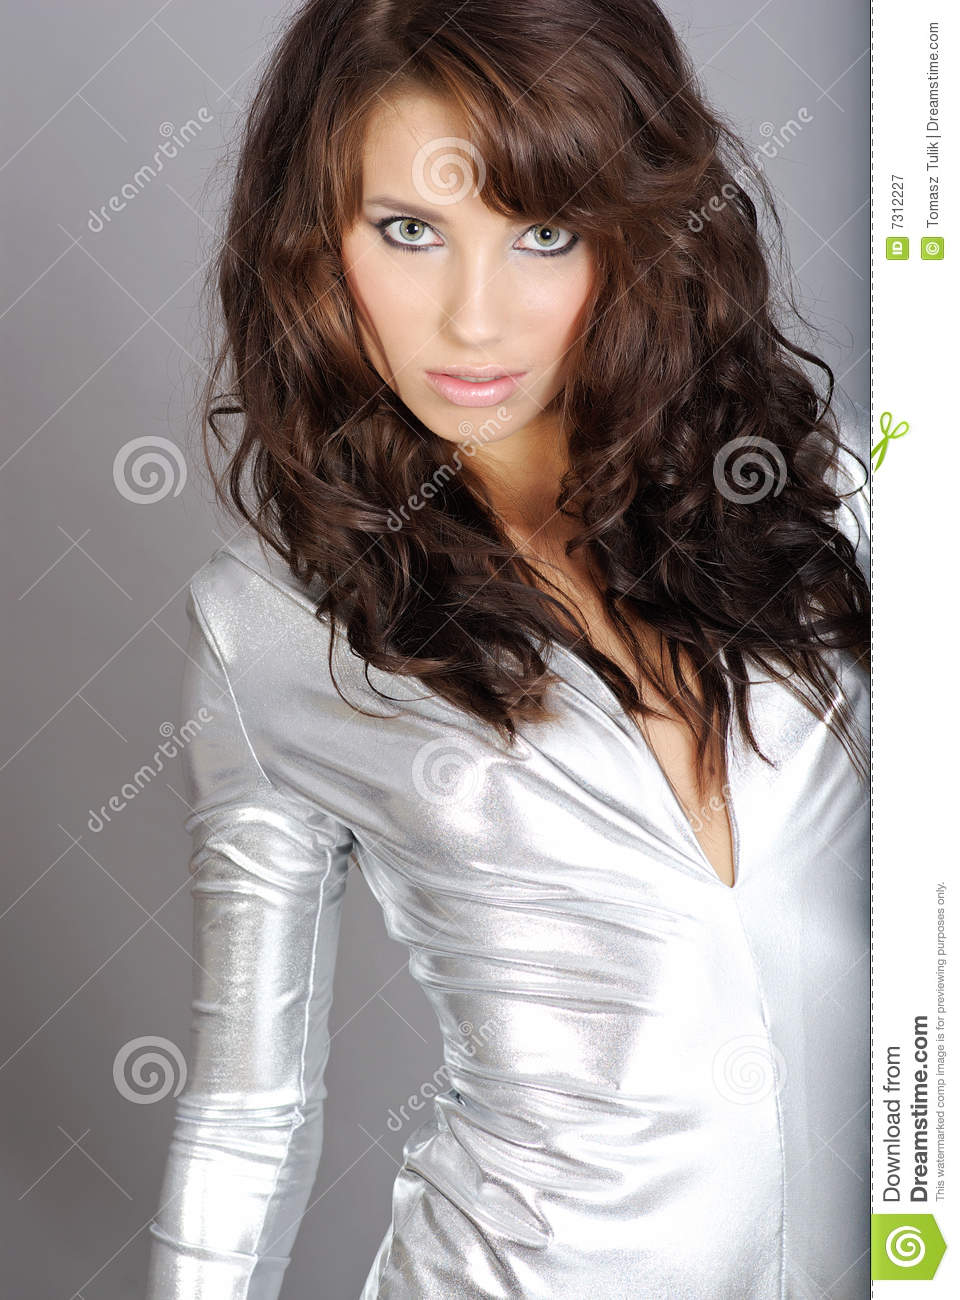 Glamour And Fashion Girl Royalty Free Stock Photography